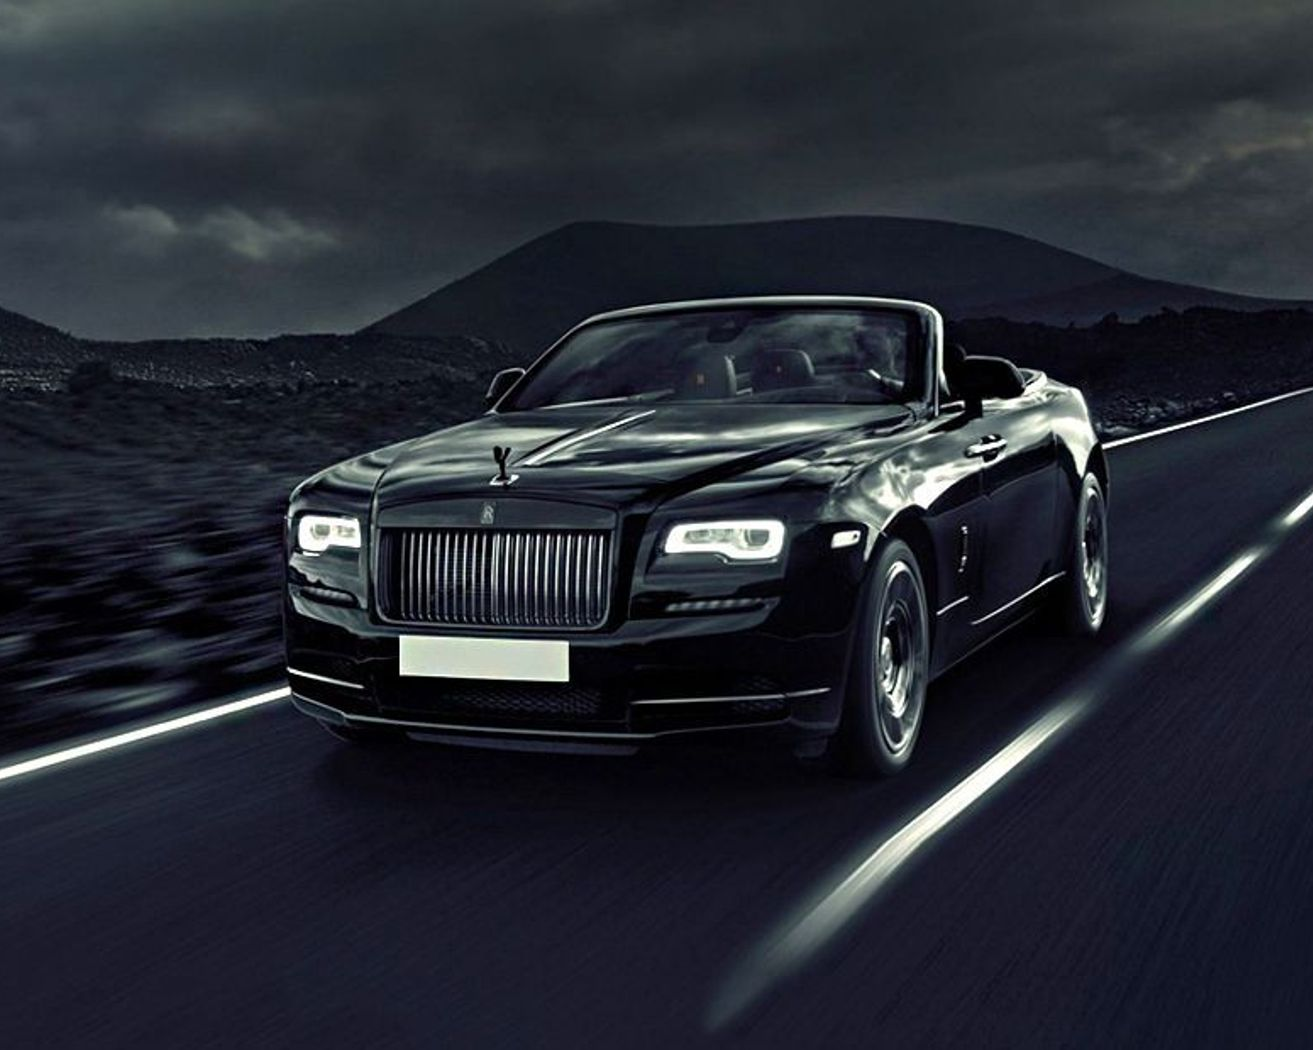 Rolls Royce Dawn Prices In Ahmedabad Specs Colors Showrooms Faqs Similar Cars